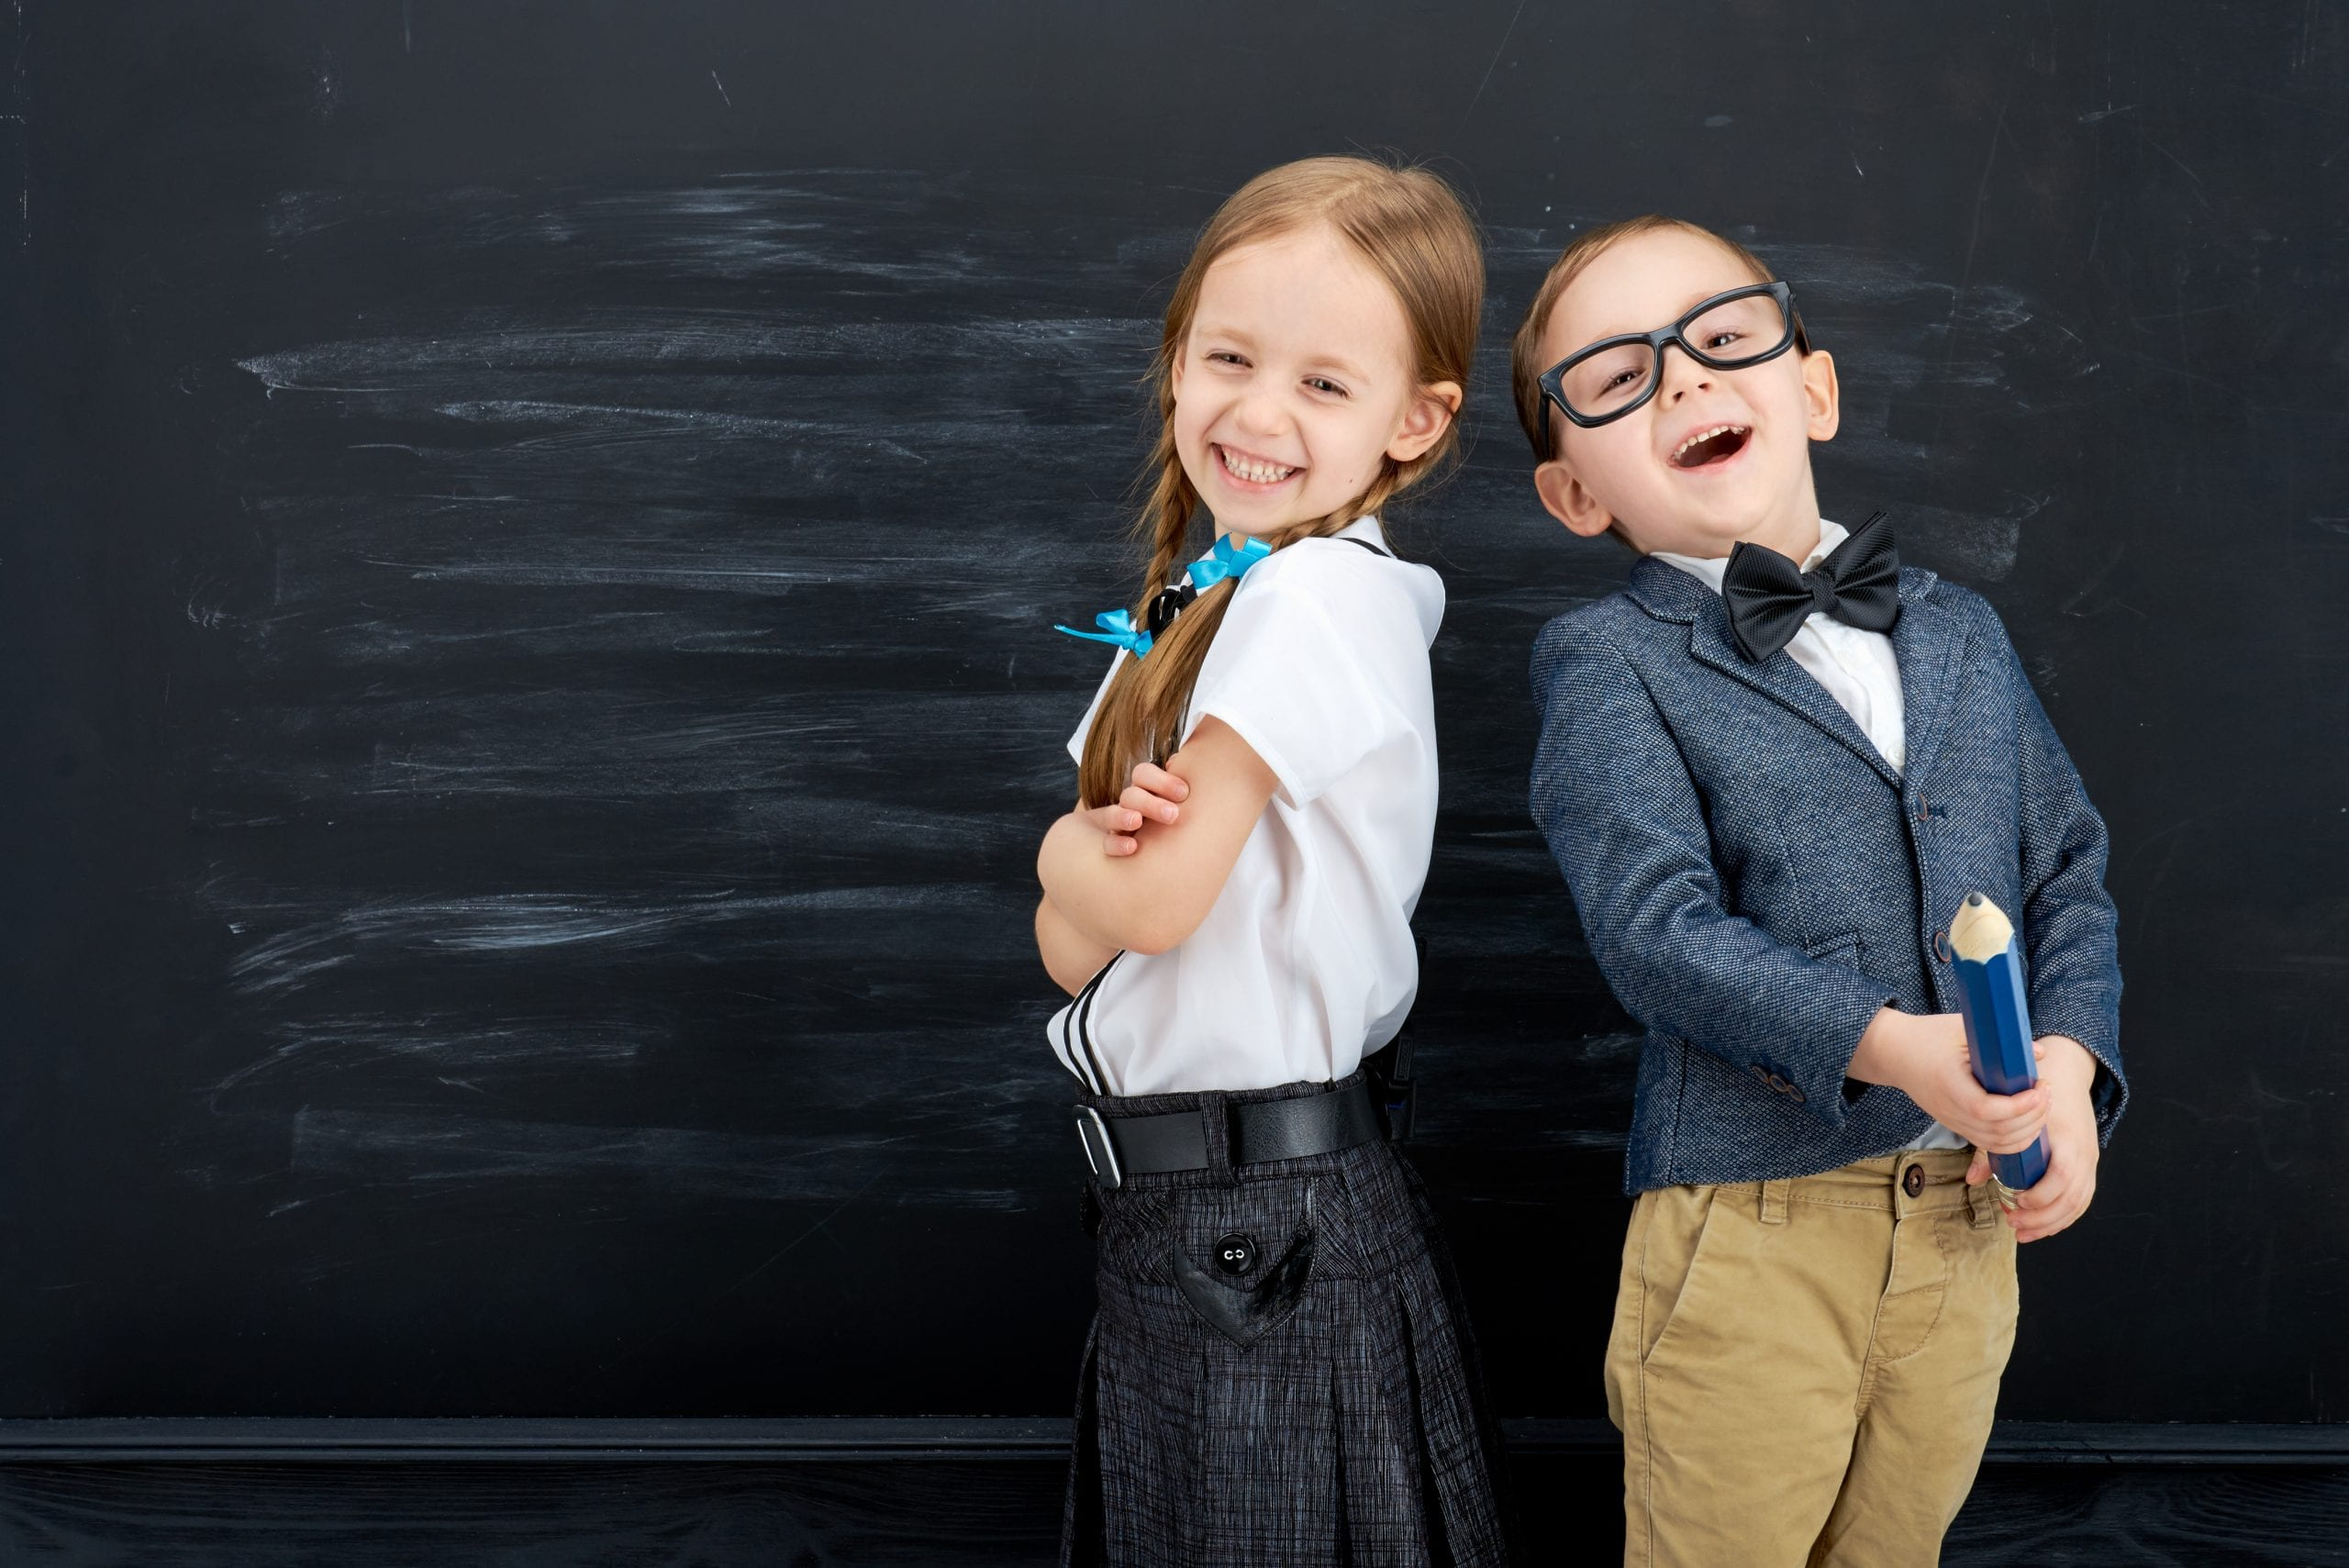 Chodesh Adar: Does Humor Work in the Classroom?